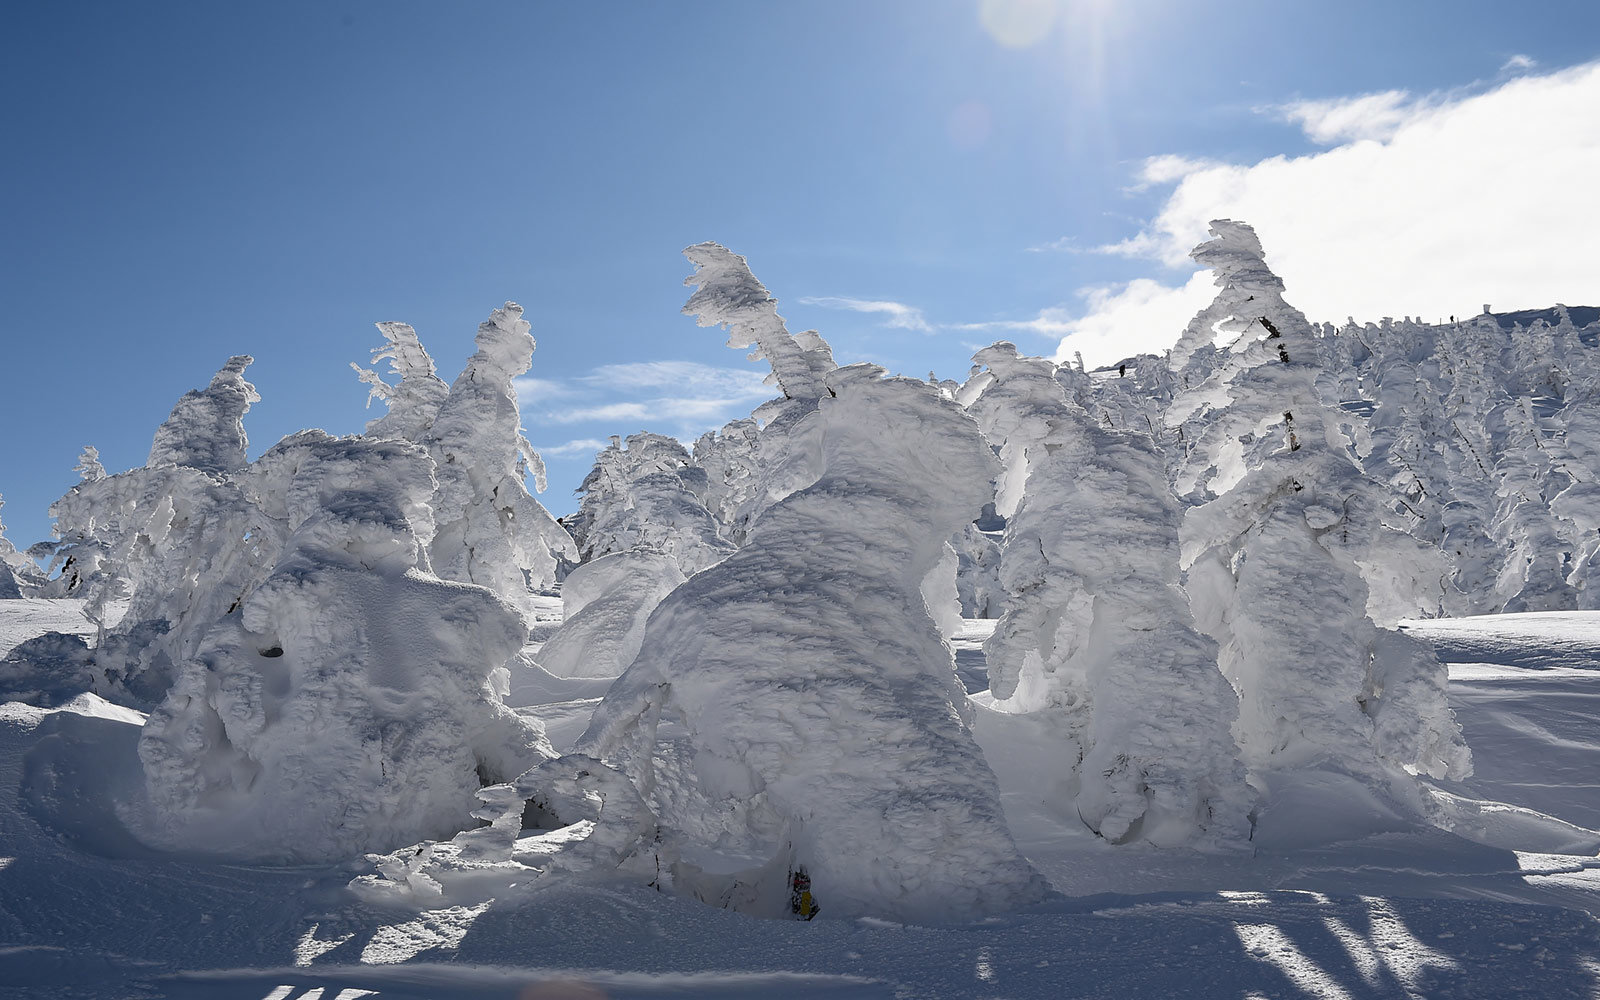 Close-up of snow monsters in Zao, Japan